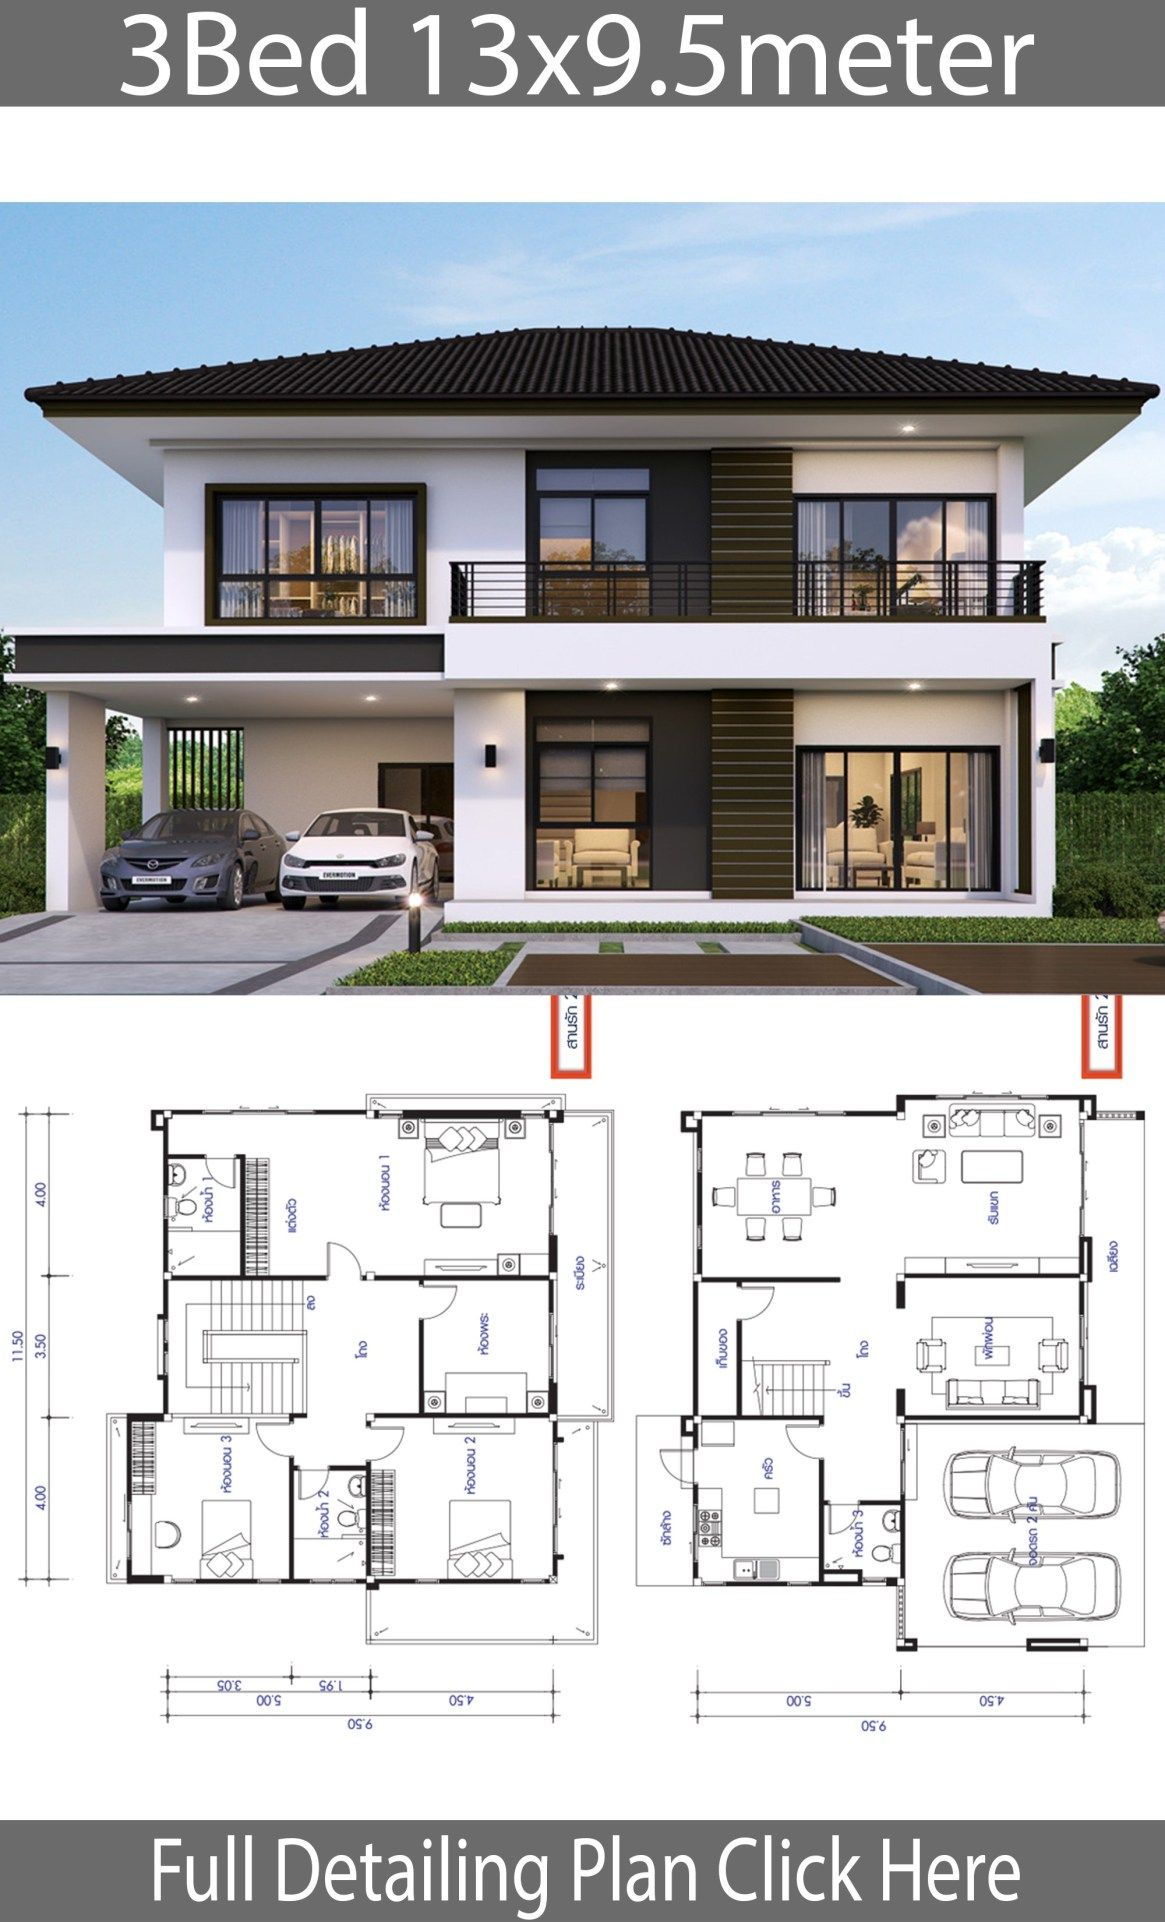 House Design Plan 9x12 5m With 4 Bedrooms Home Ideas 9x125m Bedrooms Design Home House In 2020 Bungalow House Design Duplex House Design 2 Storey House Design